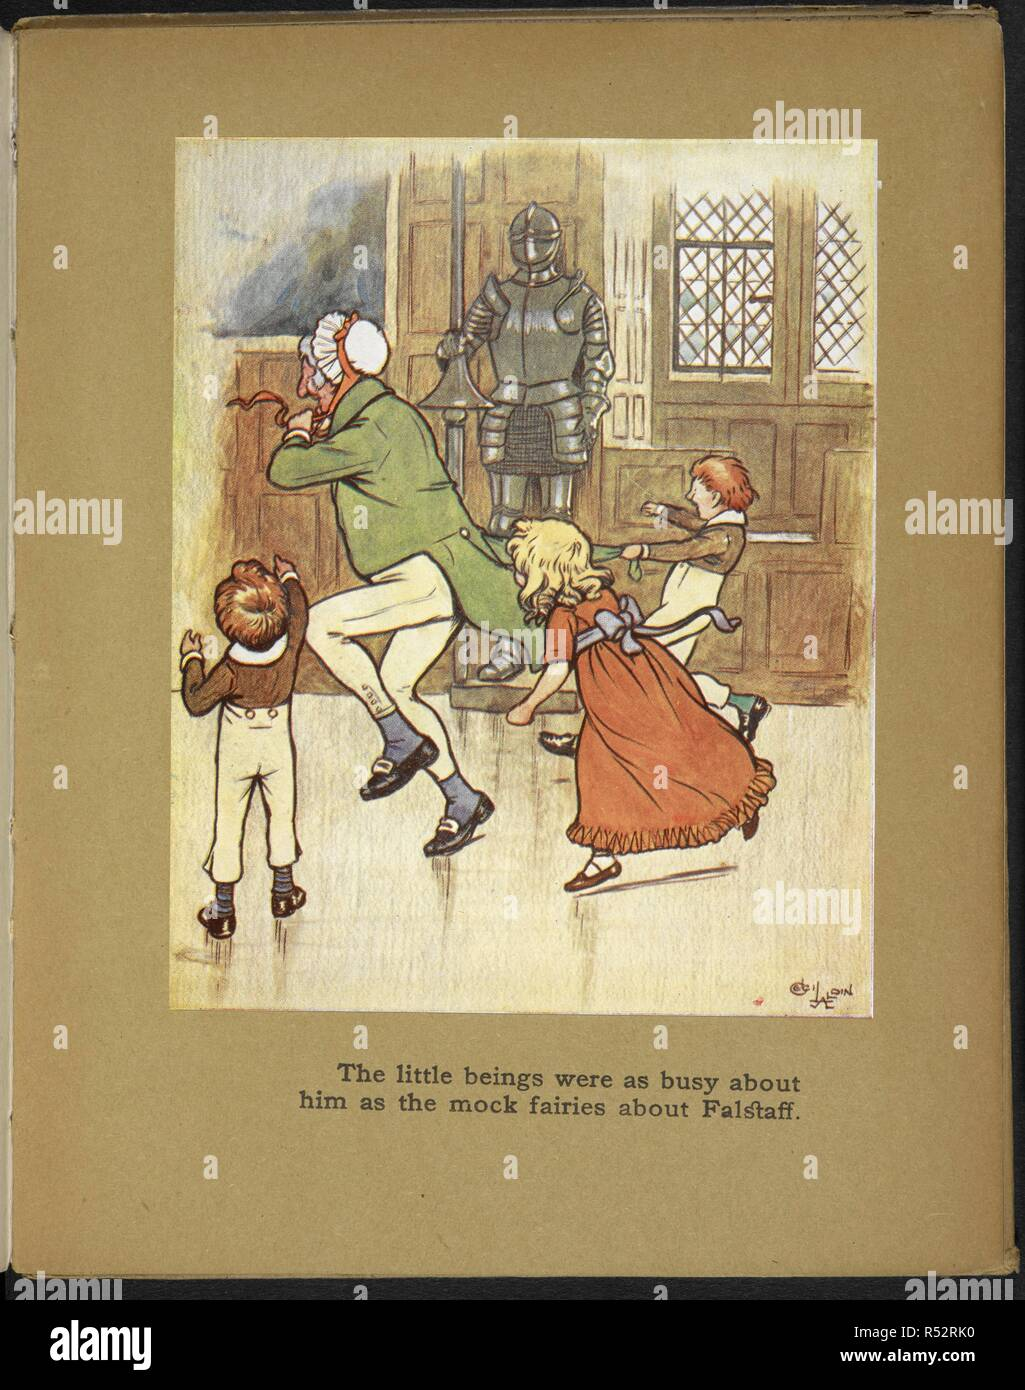 The little beings were as busy about him as the mock fairies about Falstaff - Children playing with an old man. Christmas Day. (Christmas Eve.) [From the Sketch Book.] ... Pictured in colour by Cecil Aldin. London : Hodder & Stoughton, [1910]. From 'Christmas Day'. Source: 12350.v.23. plate 4. Stock Photo